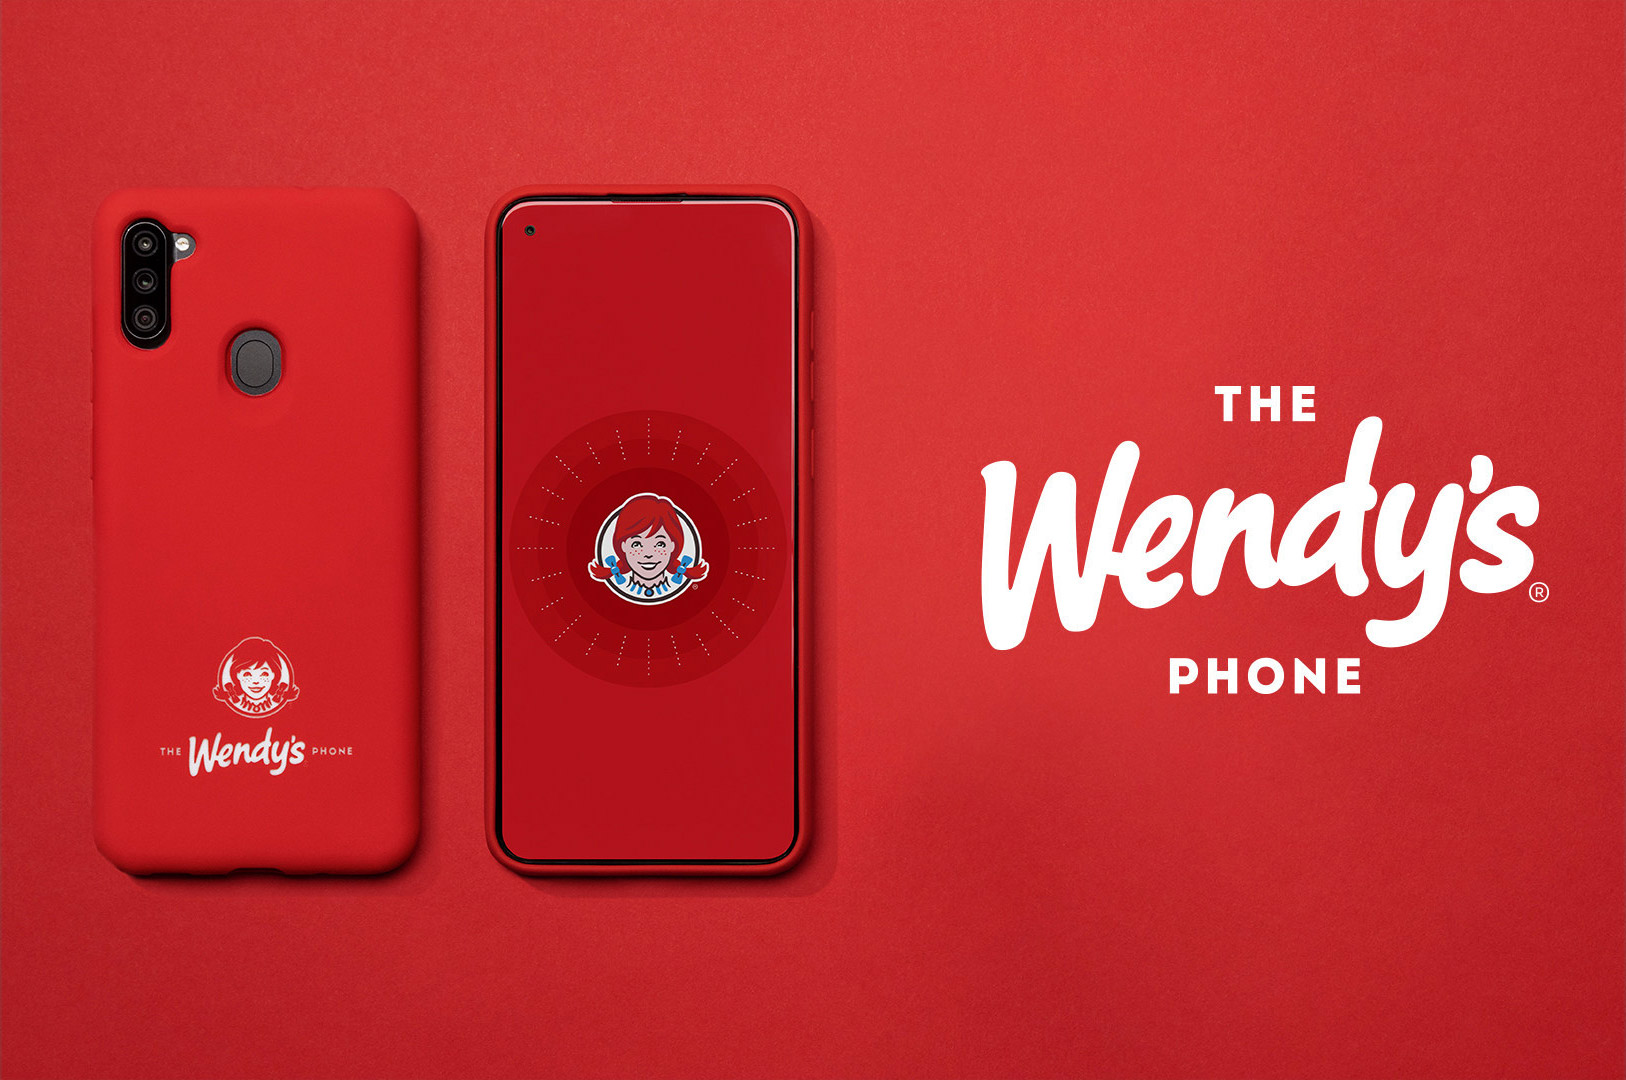 The Wendy's Phone Smartphone Canada Contest